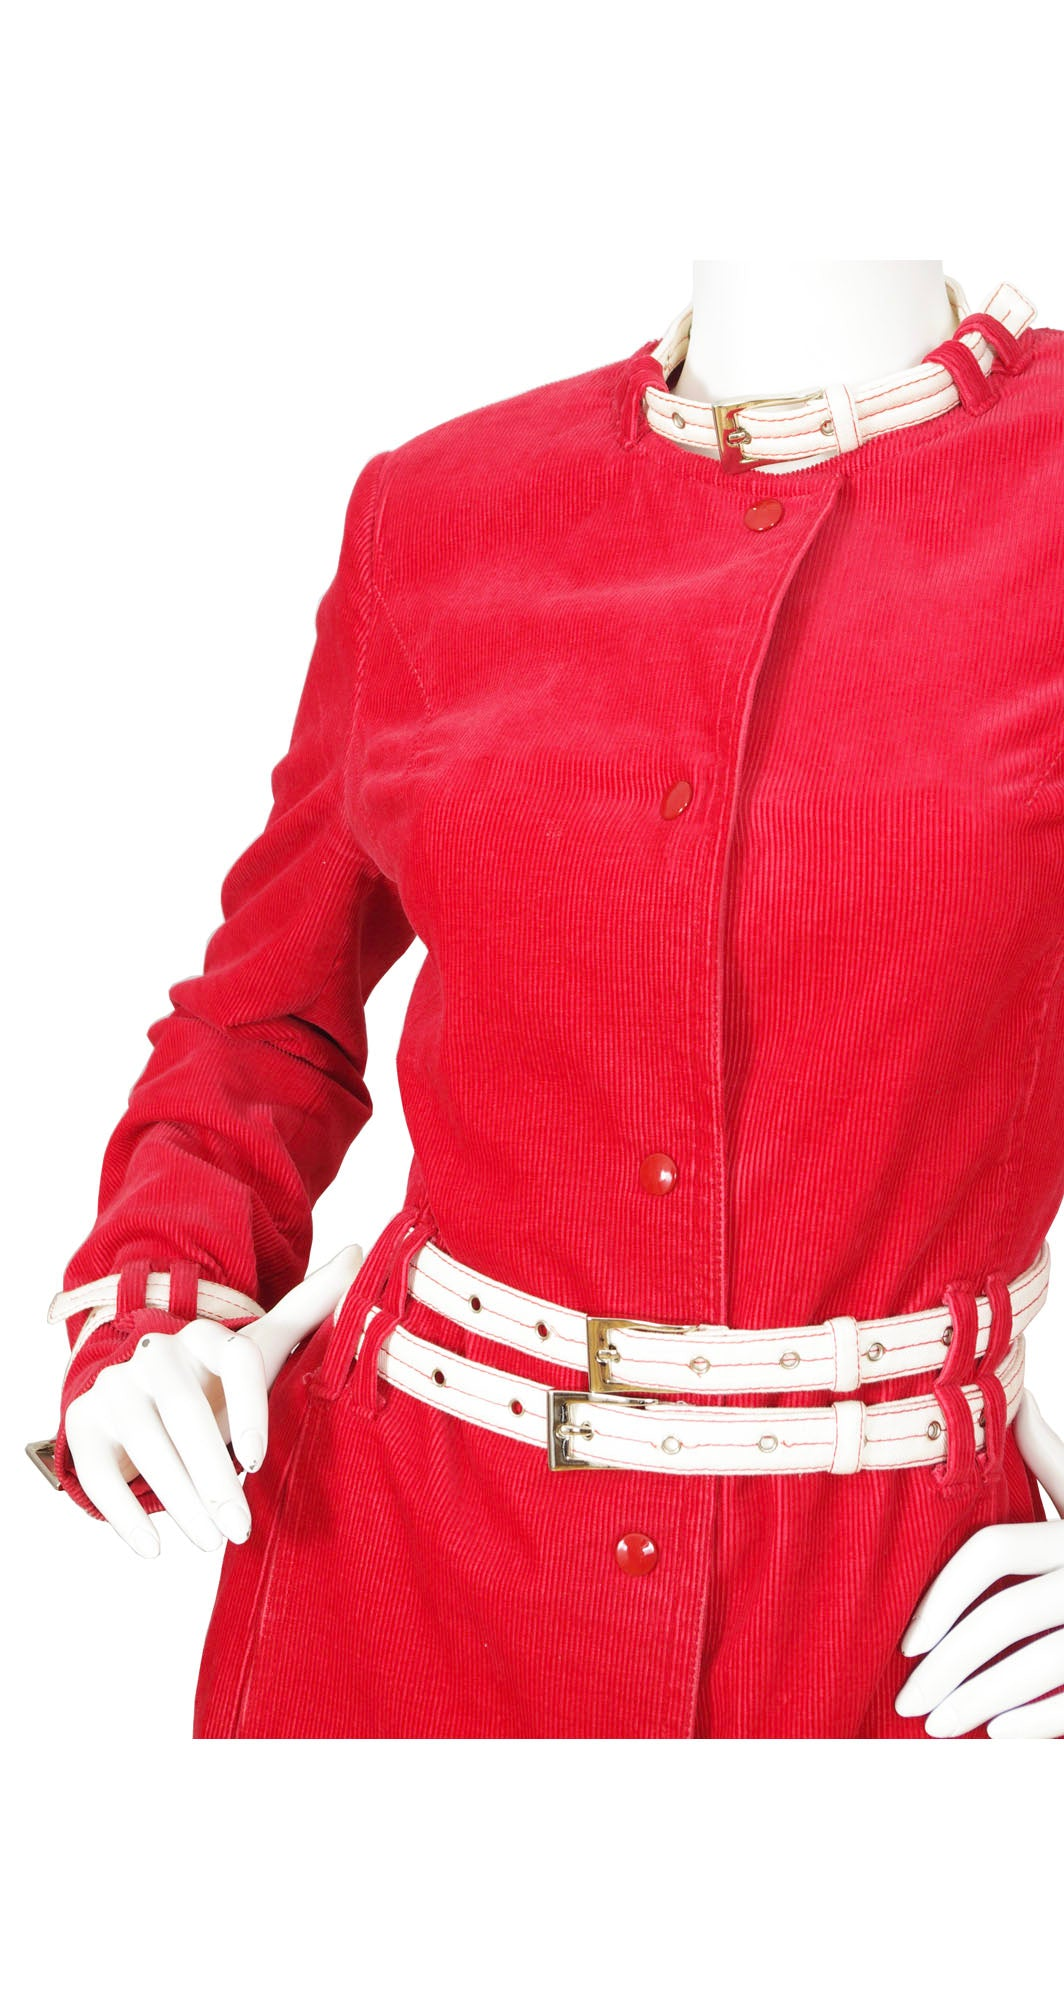 Cheap and Chic Red Corduroy Buckle Coat